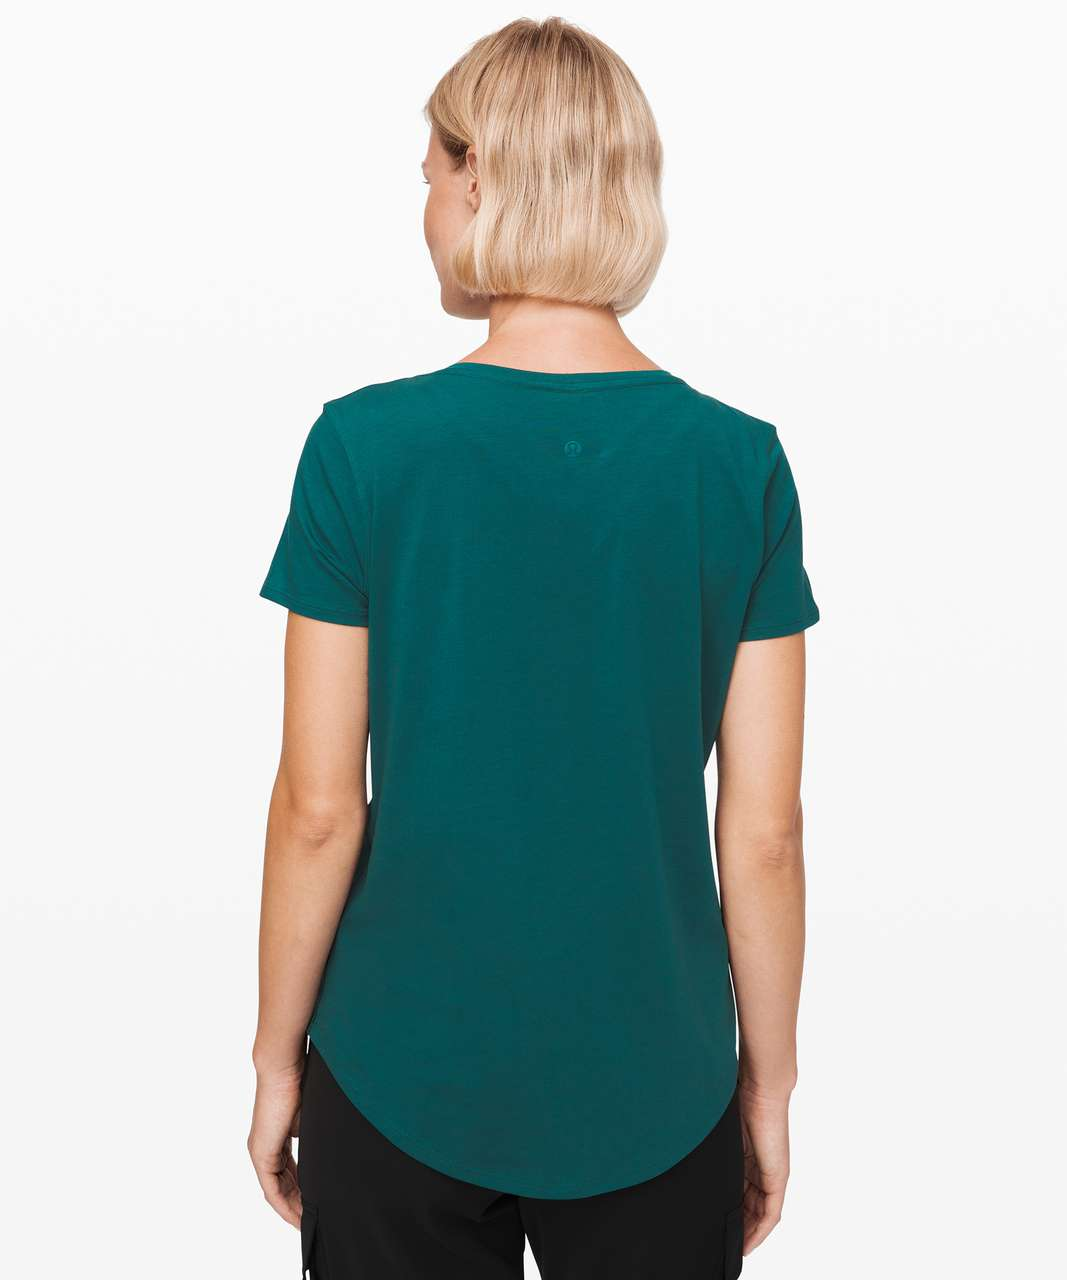 Lululemon Love Tee V - Emerald